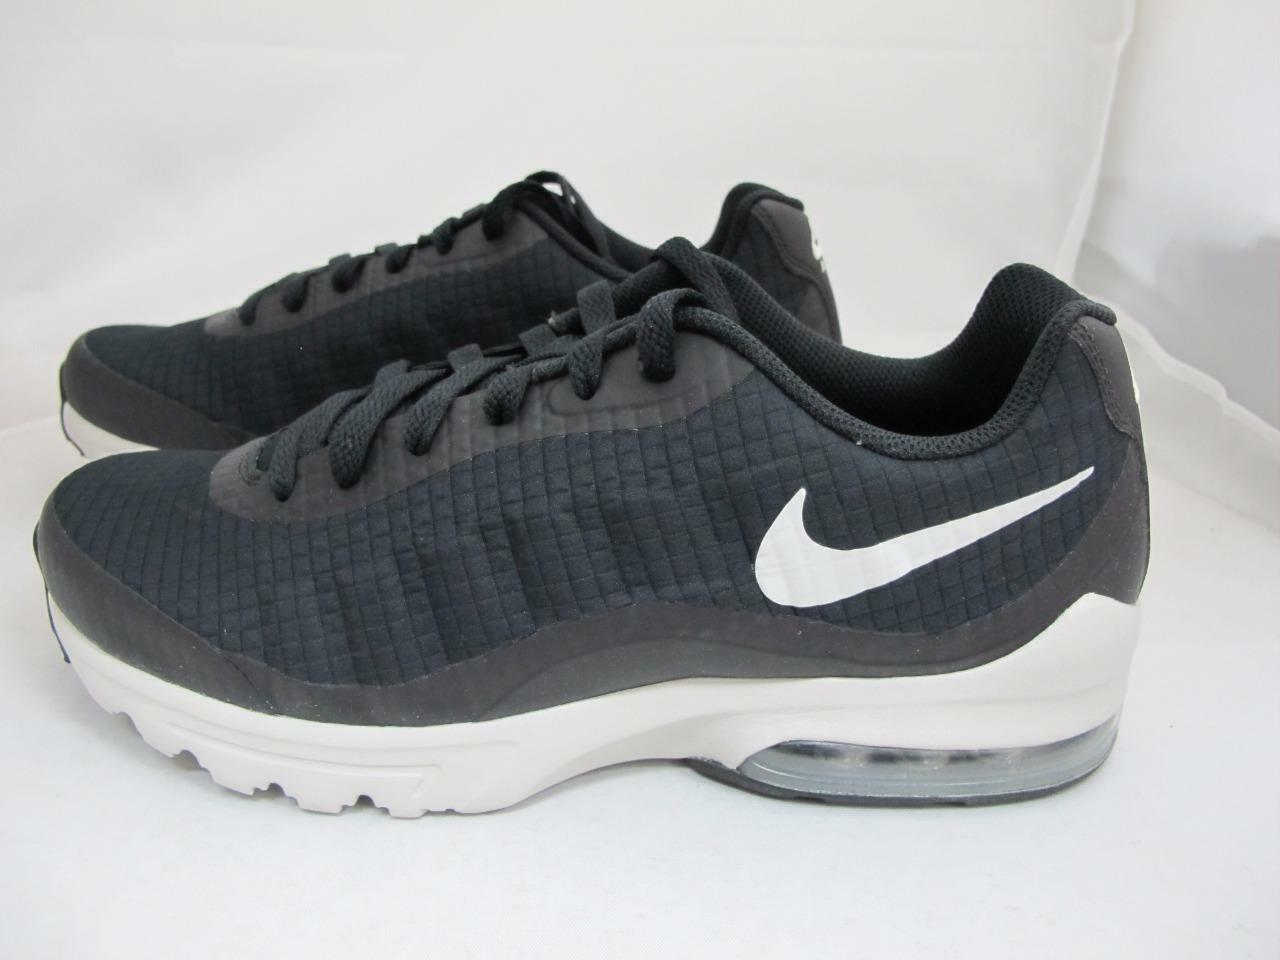 NEW homme NIKE AIR MAX INVIGOR SE 870614-002